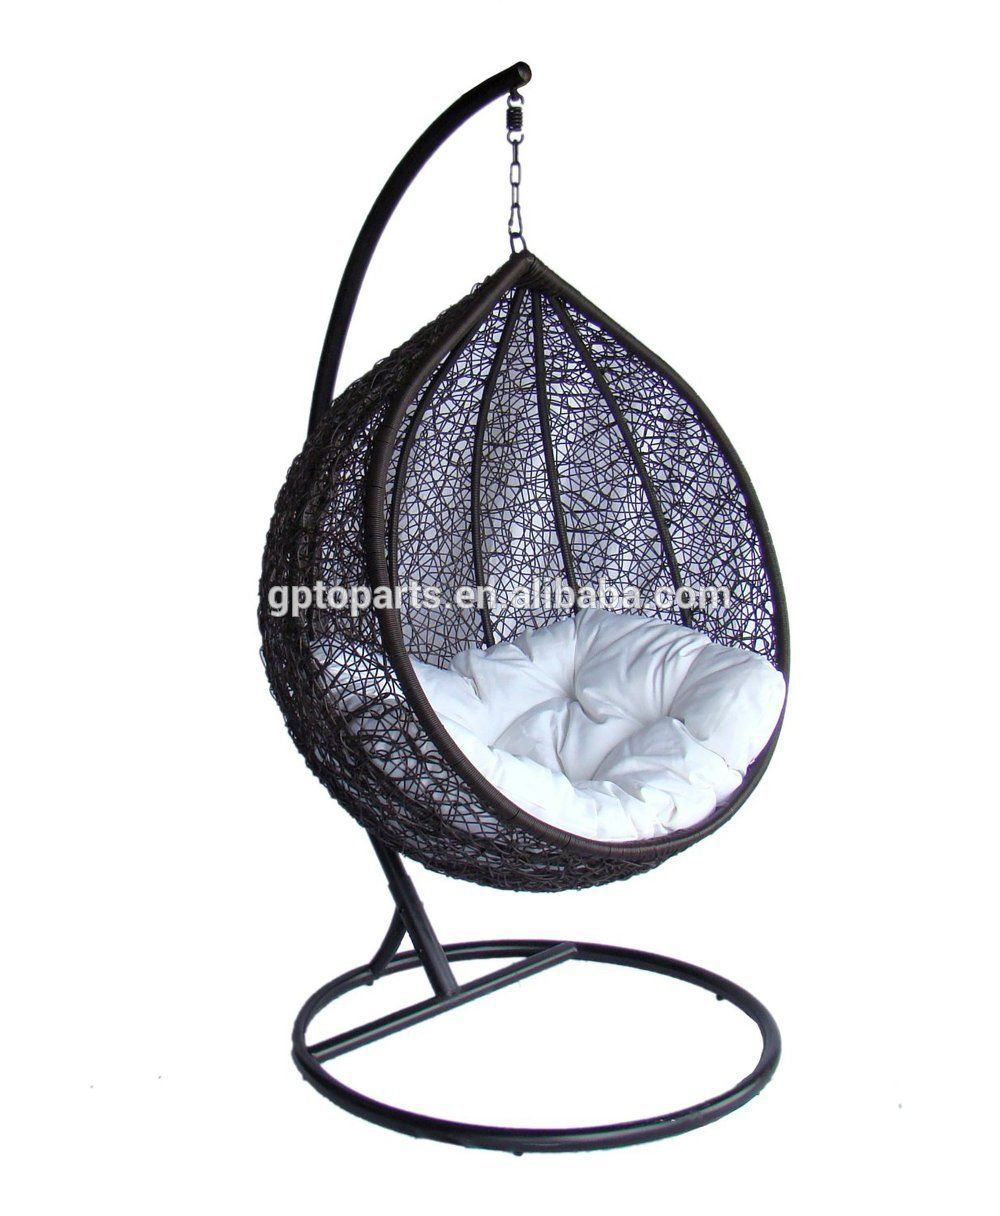 egg chair swing wrought iron lounge parts rattan hanging chairs outdoor gazebo wicker single seat